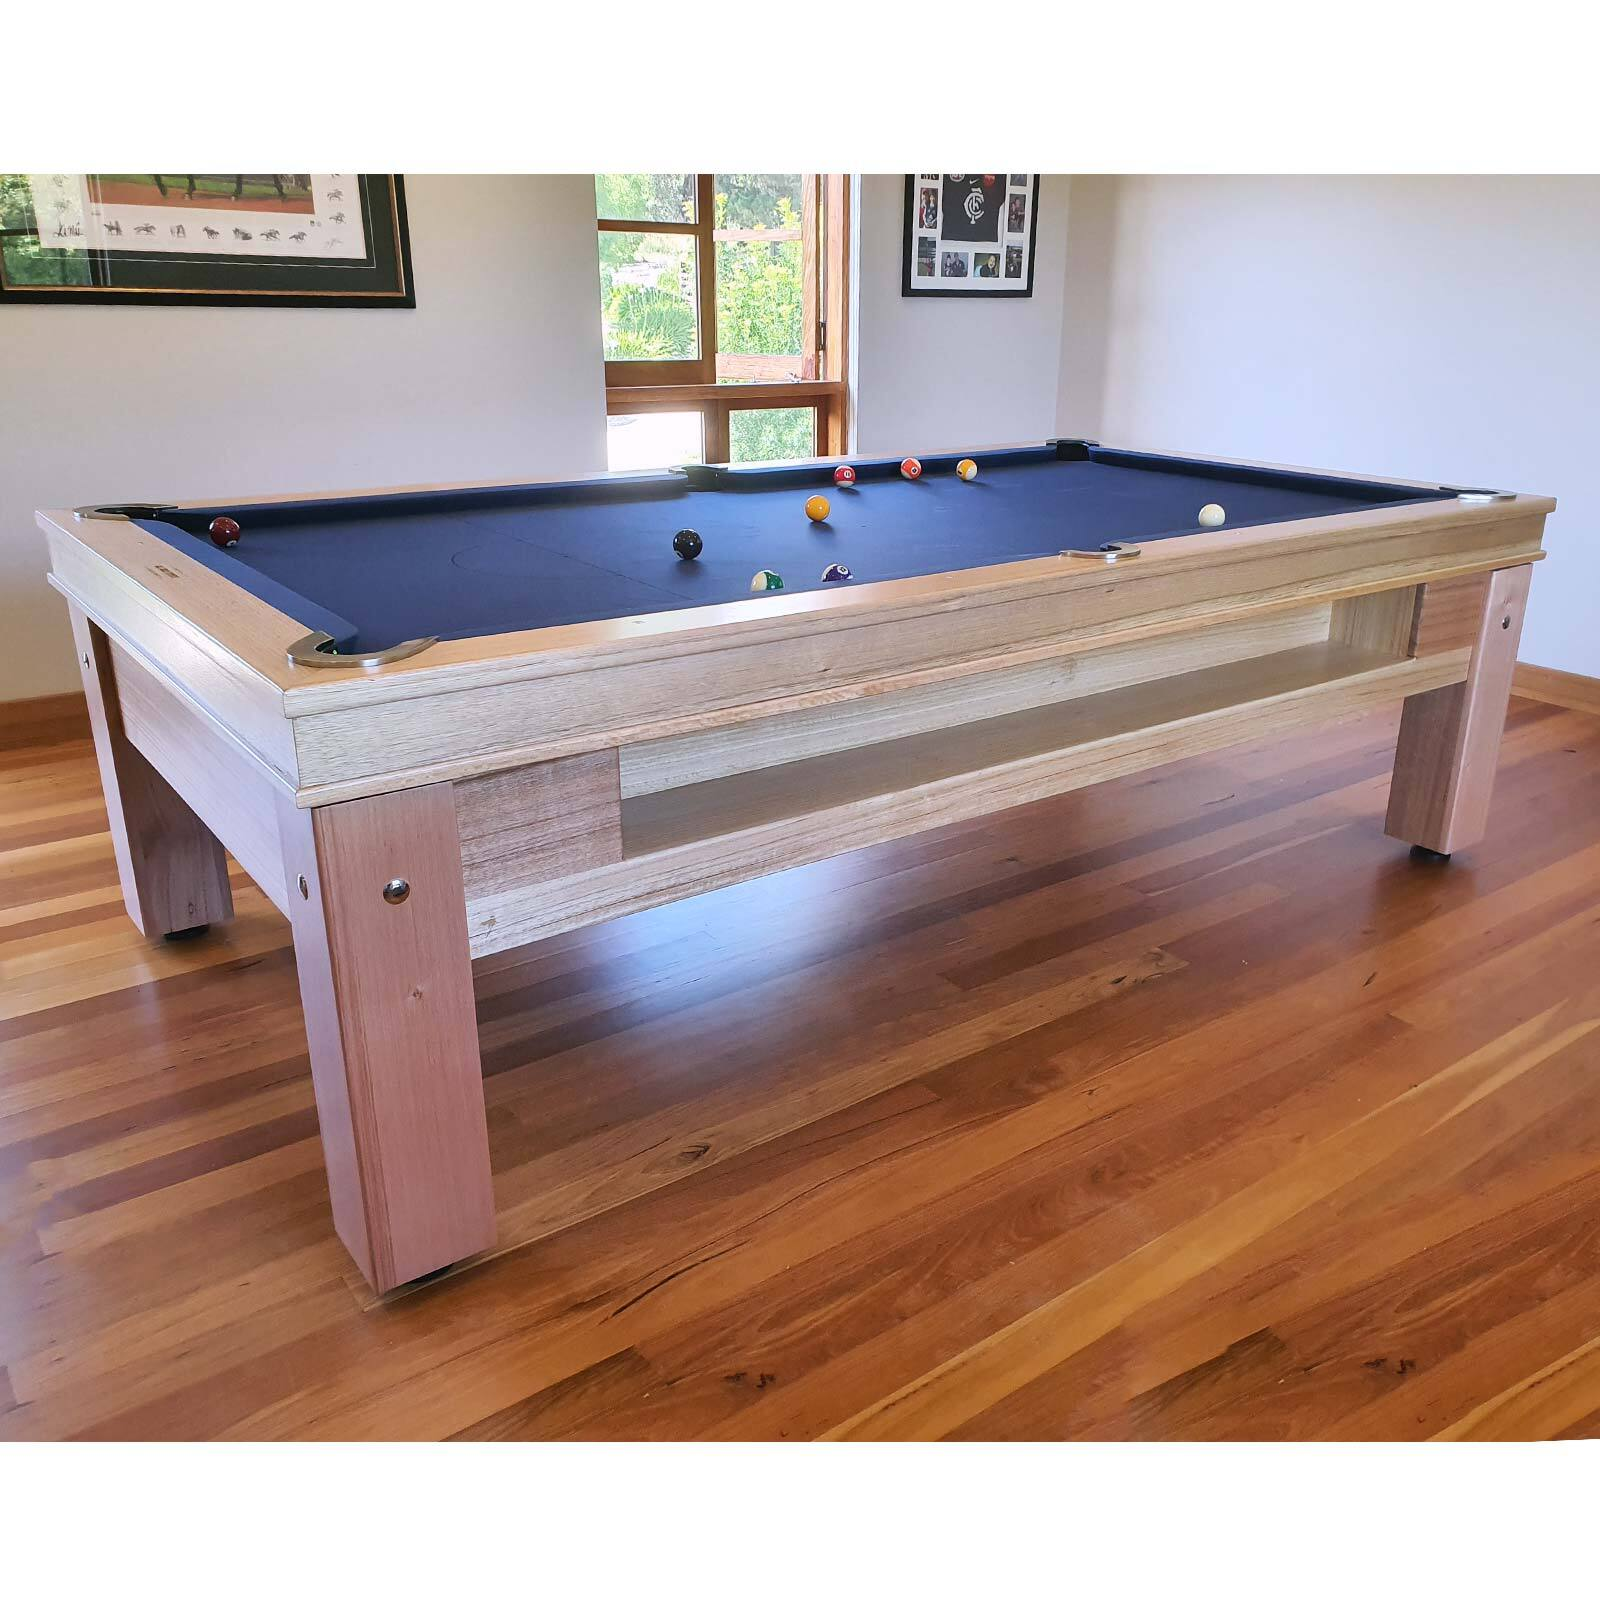 8 Foot Slate Evolution Ball Return Pub Pool Billiard Table - With Storage; MDF base